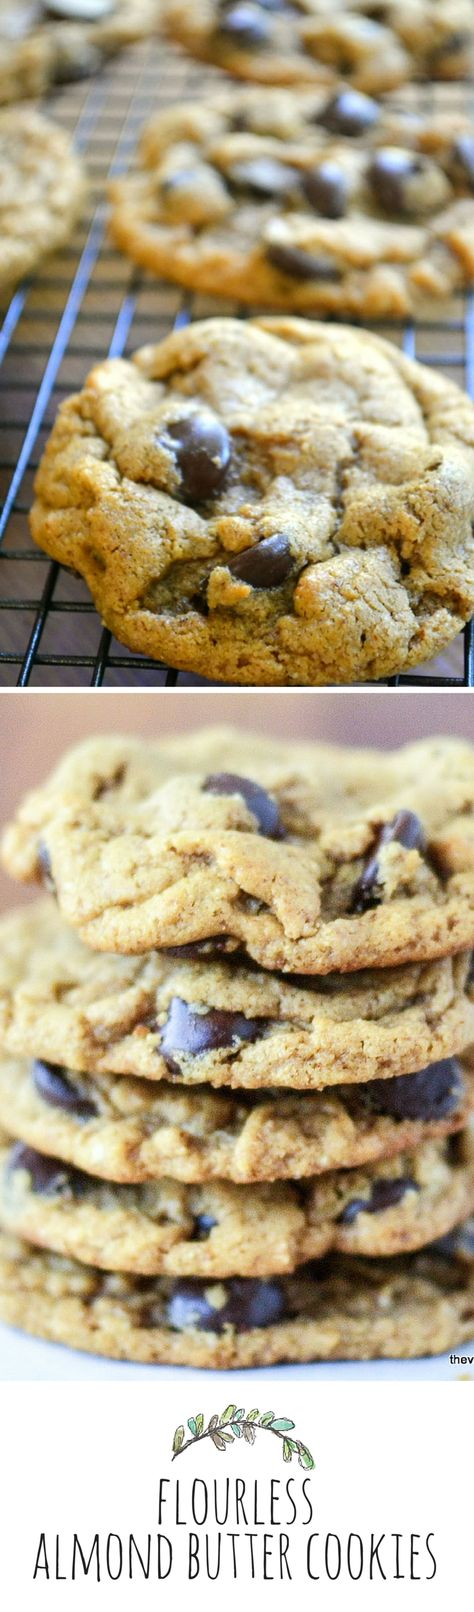 Flourless Almond Butter Chocolate Chip Cookies -- gluten free and oh so delicious! http://theviewfromgreatisland.com/2013/09/minimal-mondayflourless-almond-butter-chocolate-chips.html